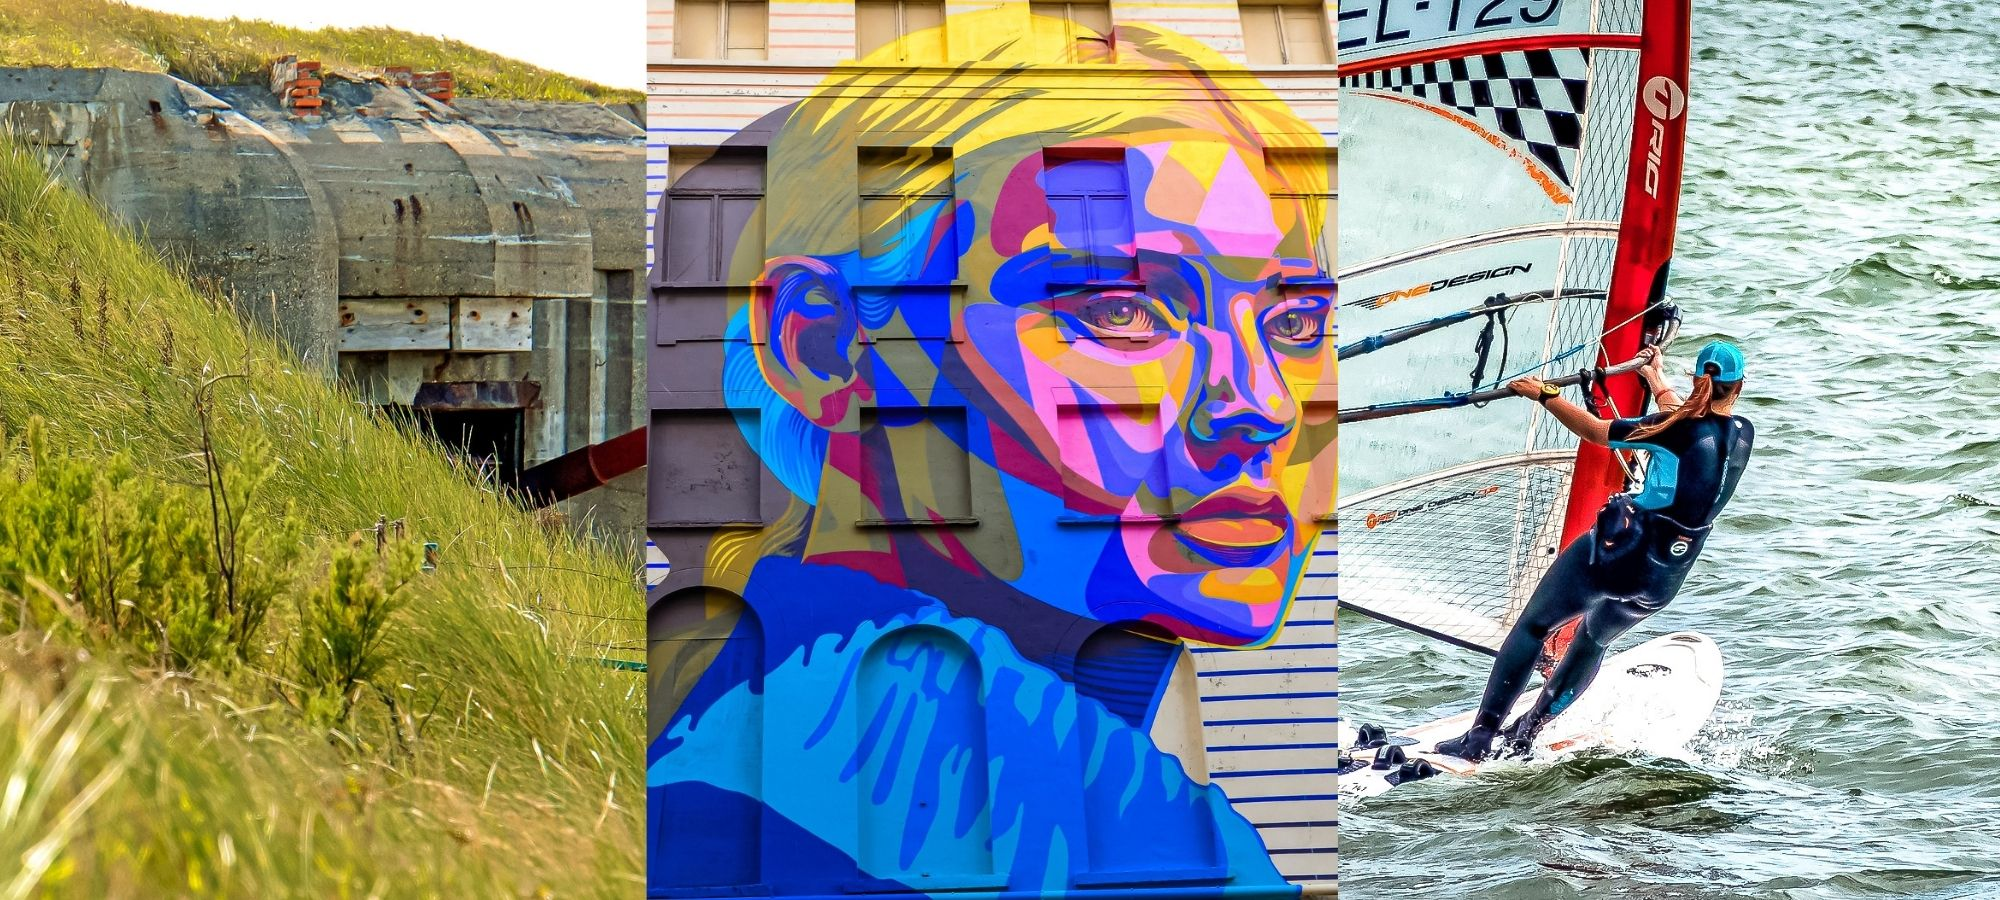 The face of a woman painted onto the side of a building as part of the Crystal Ship street art exhibition in Oostende